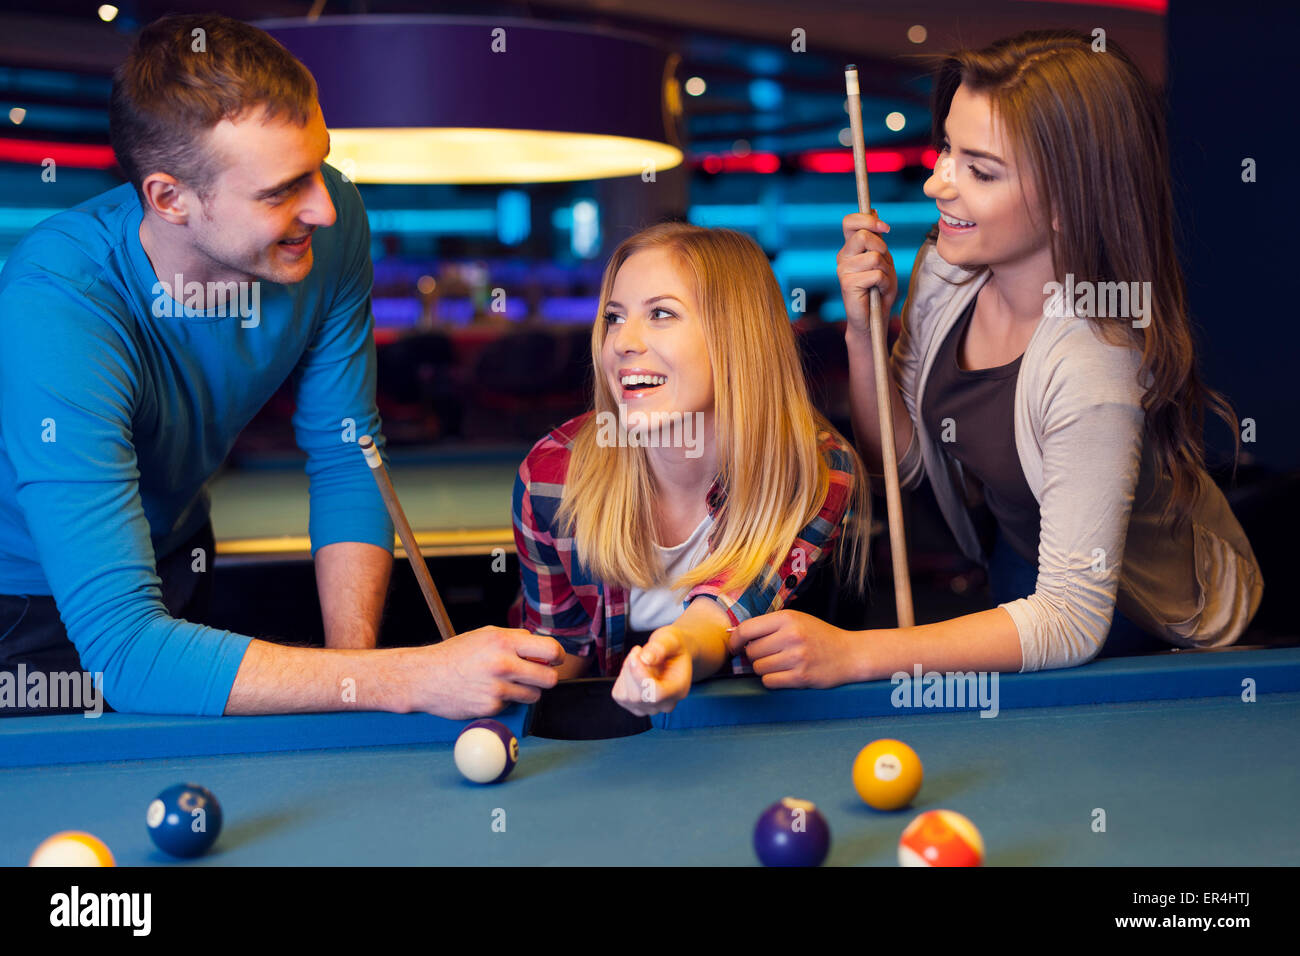 Friends hanging out at the pool table - Stock Image